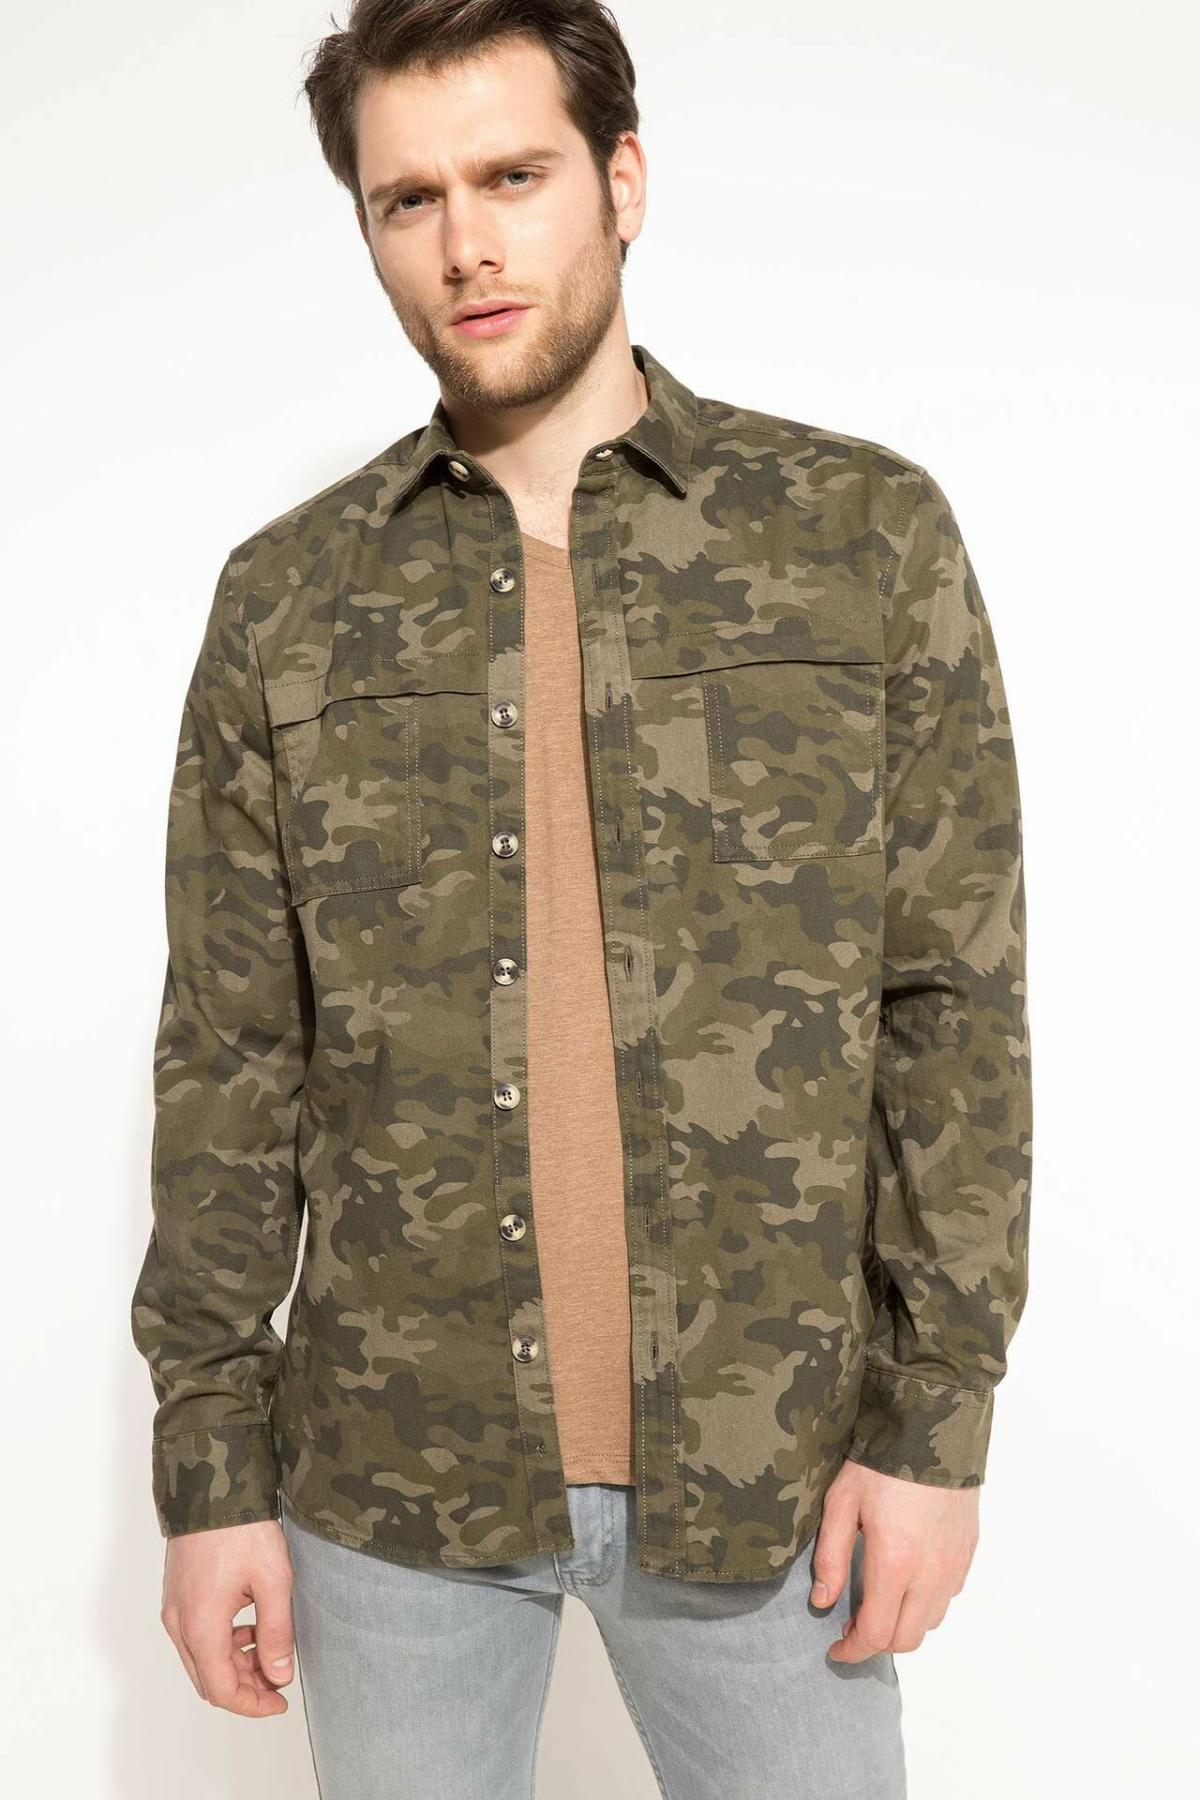 DeFacto Men Fashion Camouflage Shirts Long Sleeve Shirts Mens Casual Lapel Collar Casual Shirt New - I1566AZ18SP